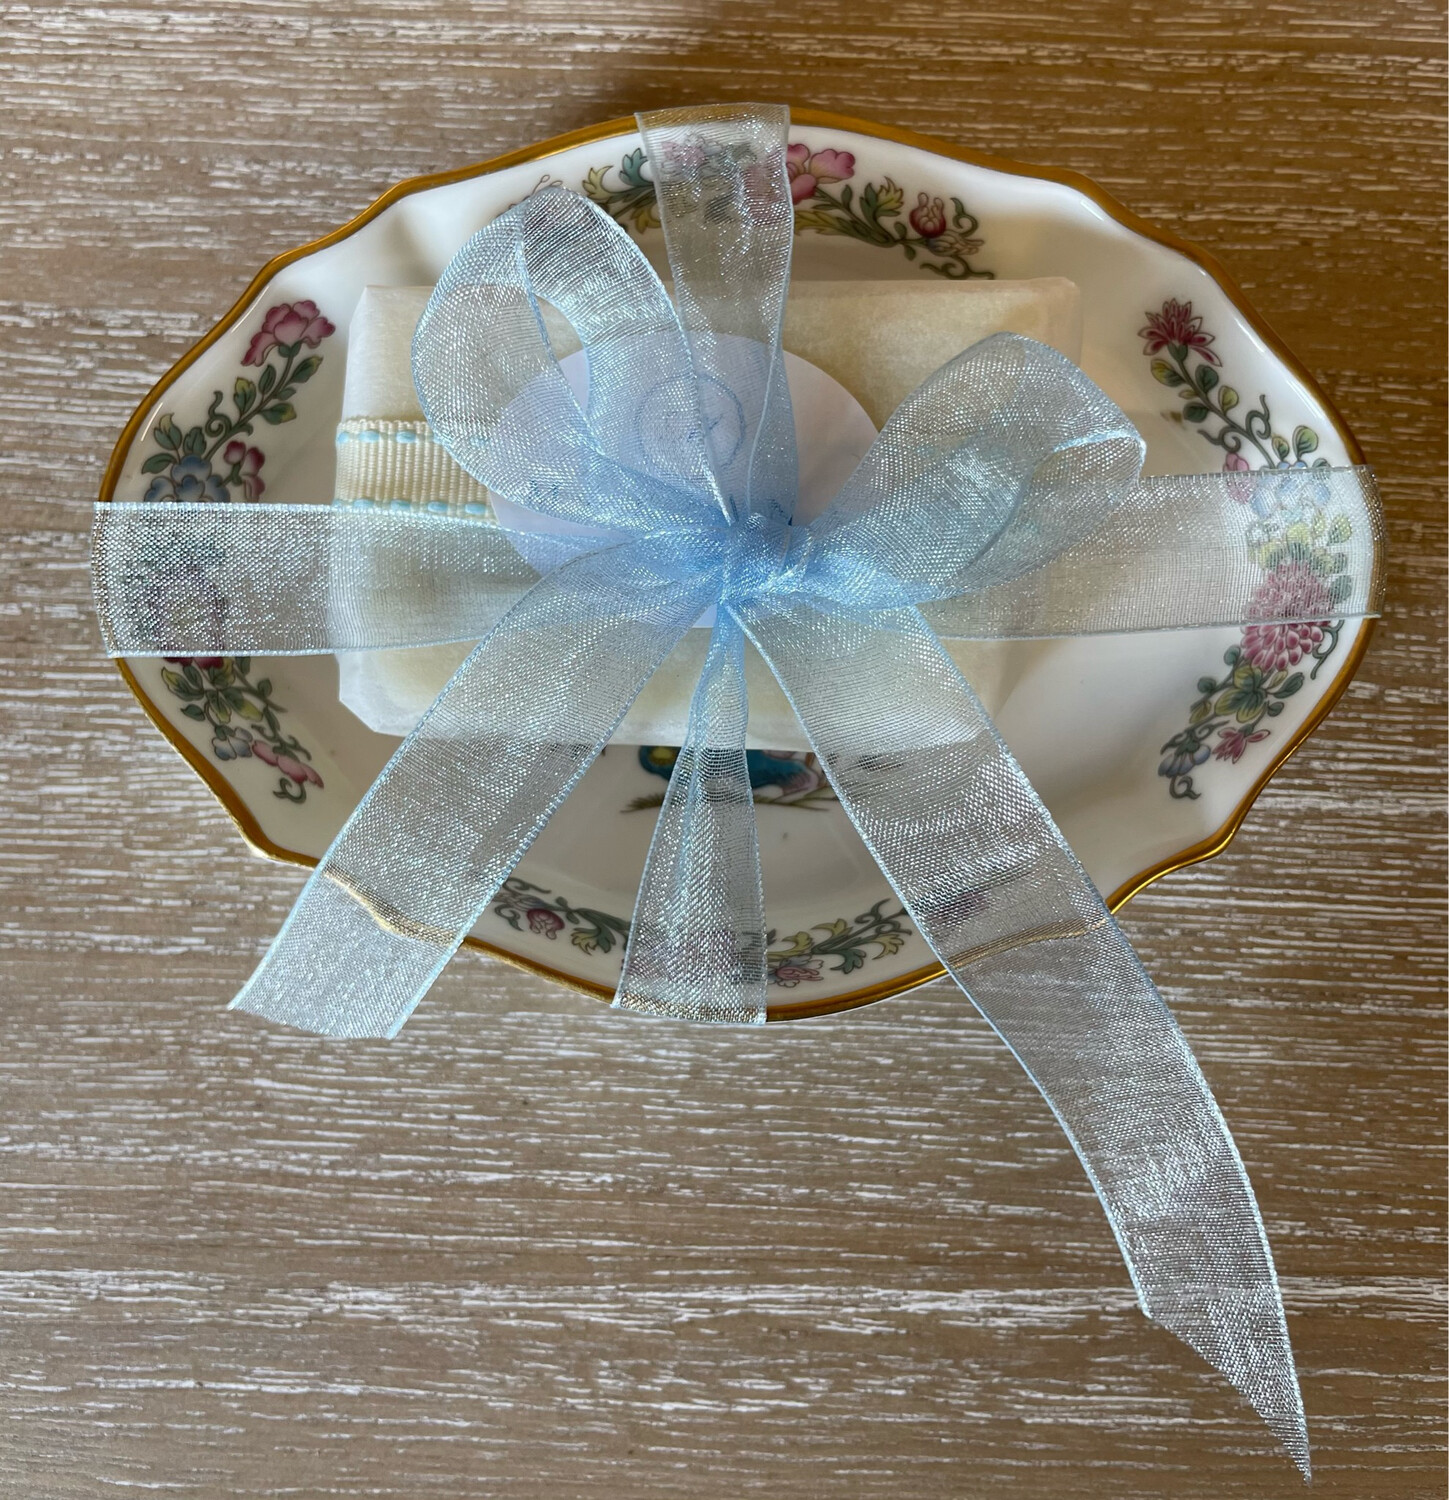 Vintage English Bone China Soap Dish and Guest Soap